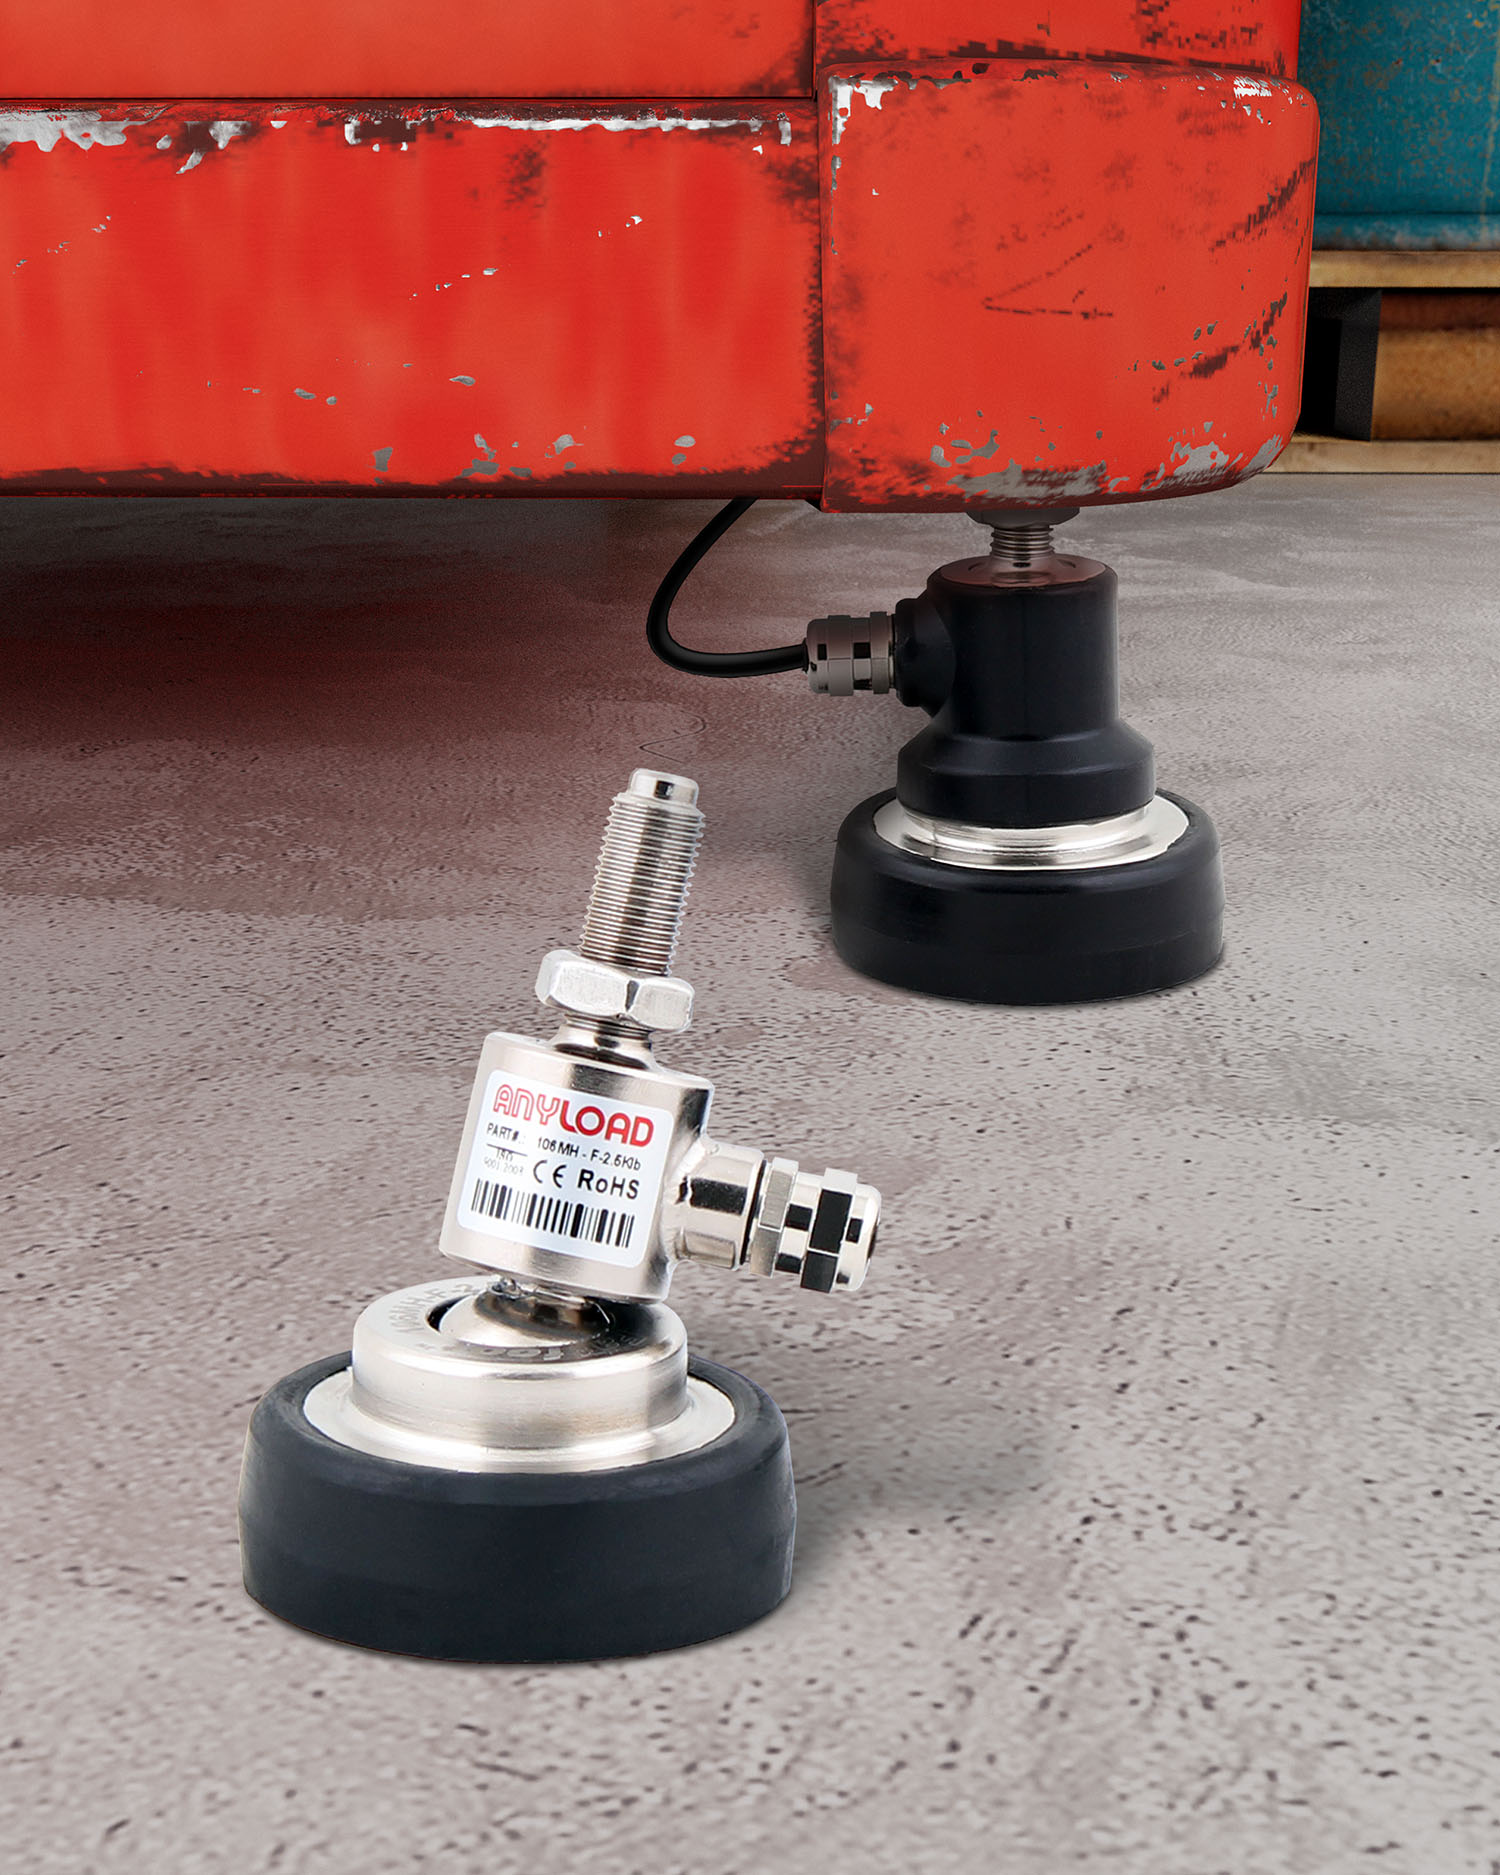 FOOT LOAD CELLS ELIMINATE BULKY WEIGH MODULES